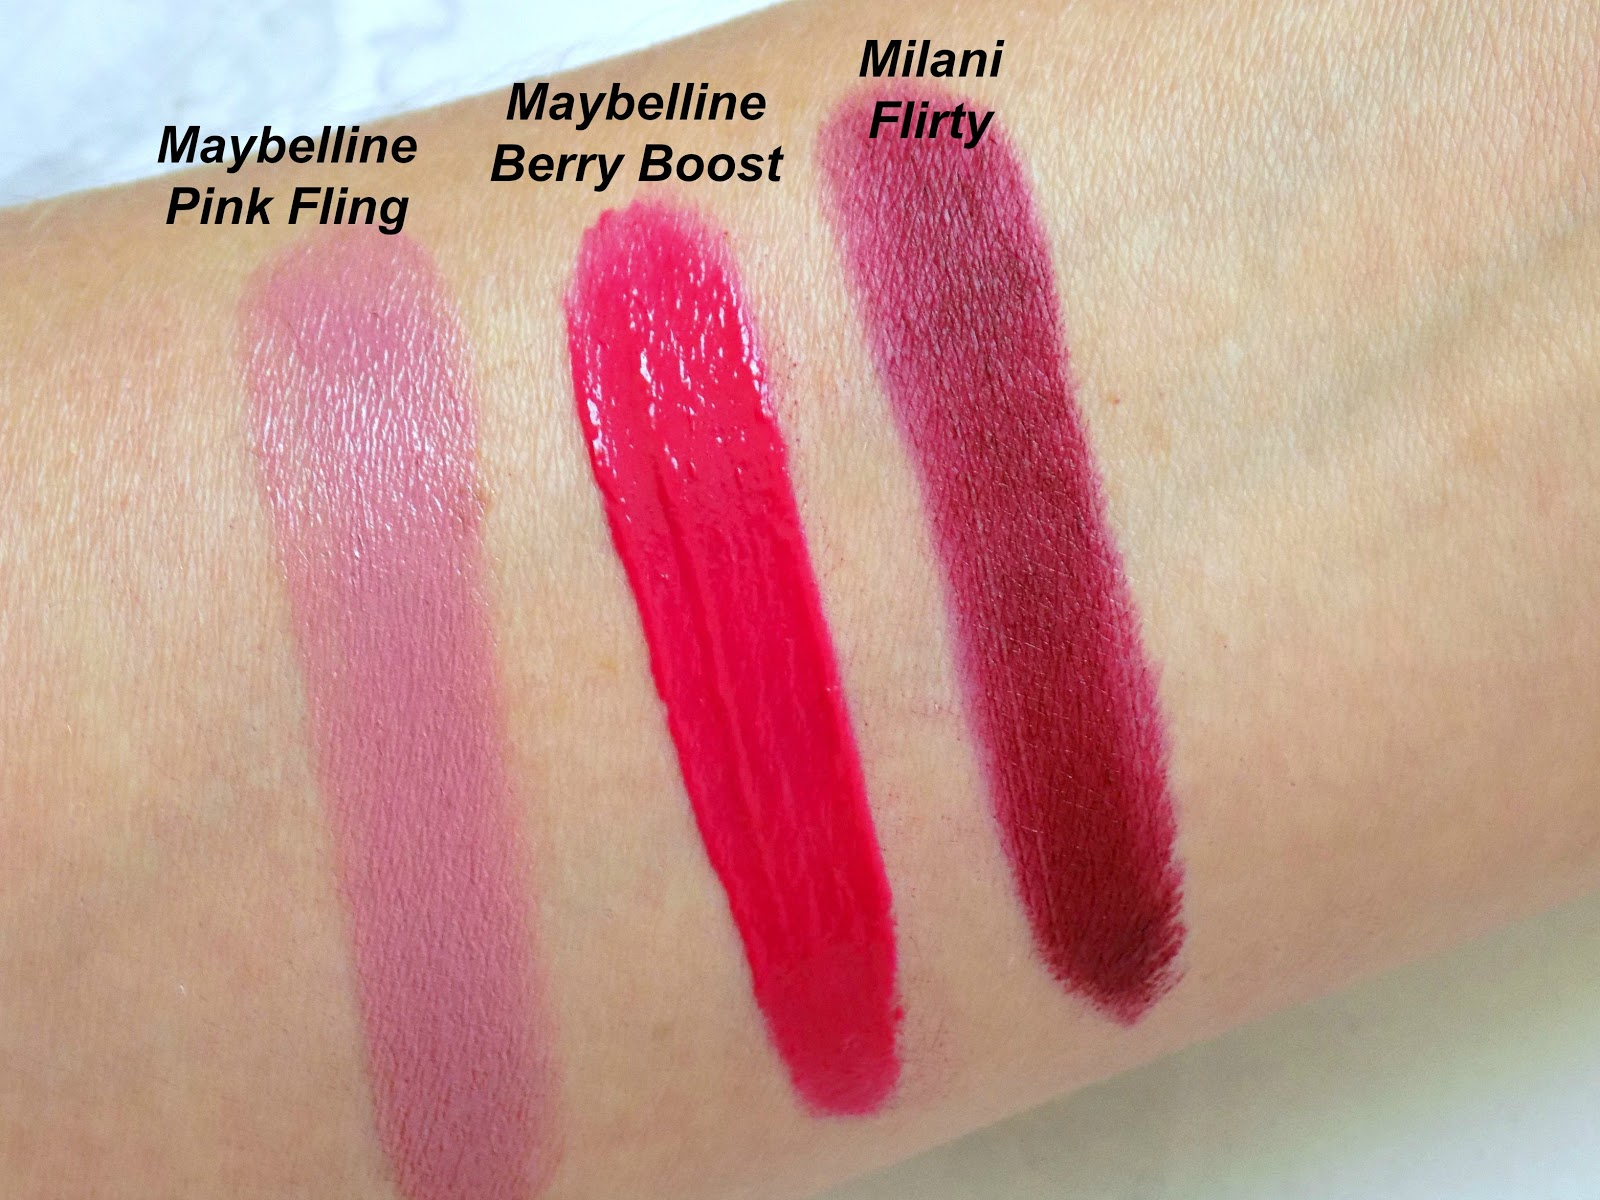 Milani Color Statement Matte Lipstick in Flirty